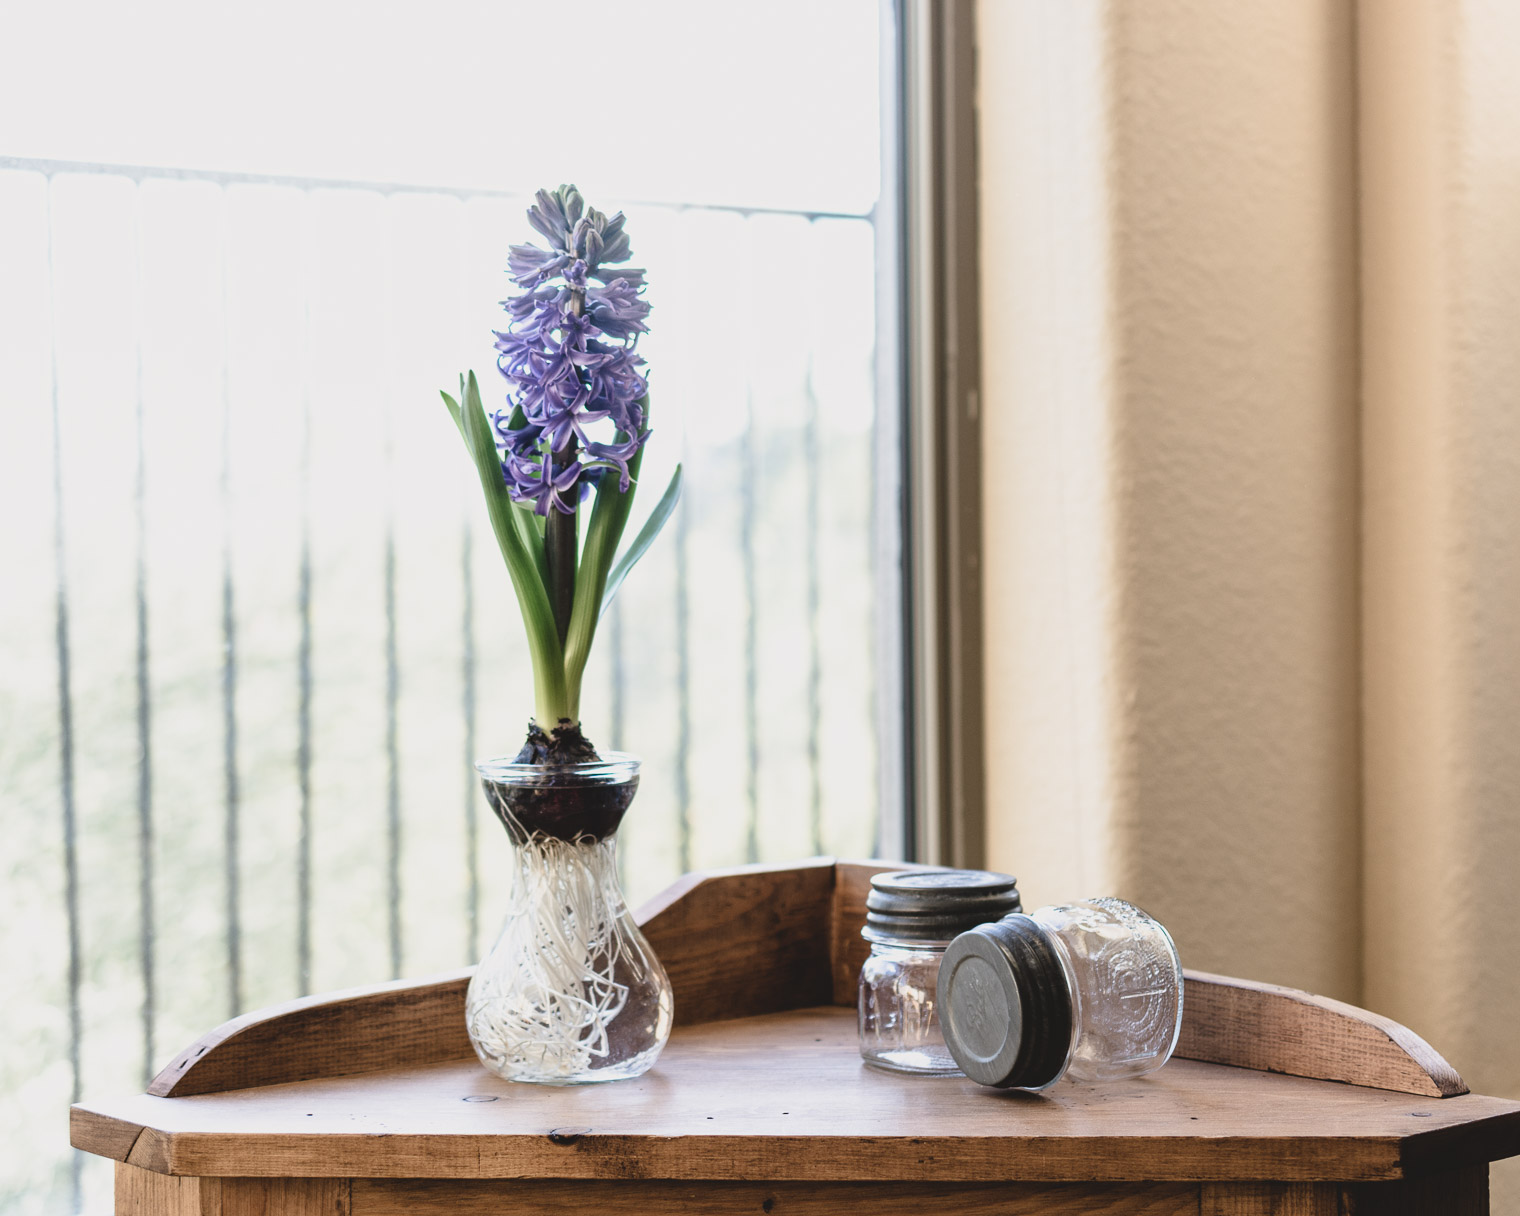 Hyacinth Bulb in Glass Vase